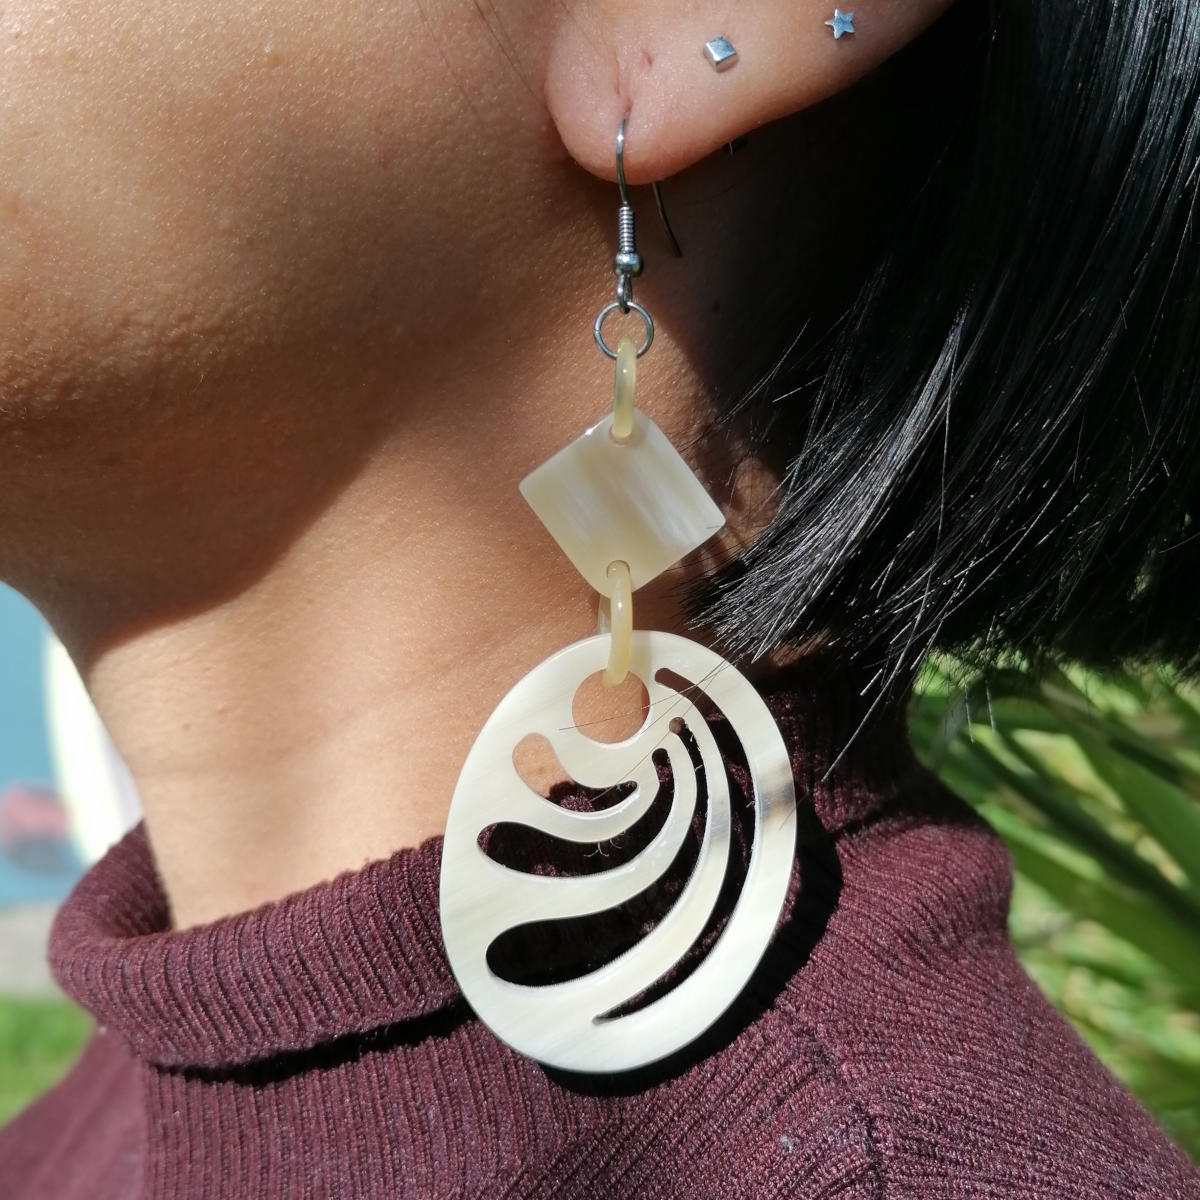 Spirit of the winds - earrings